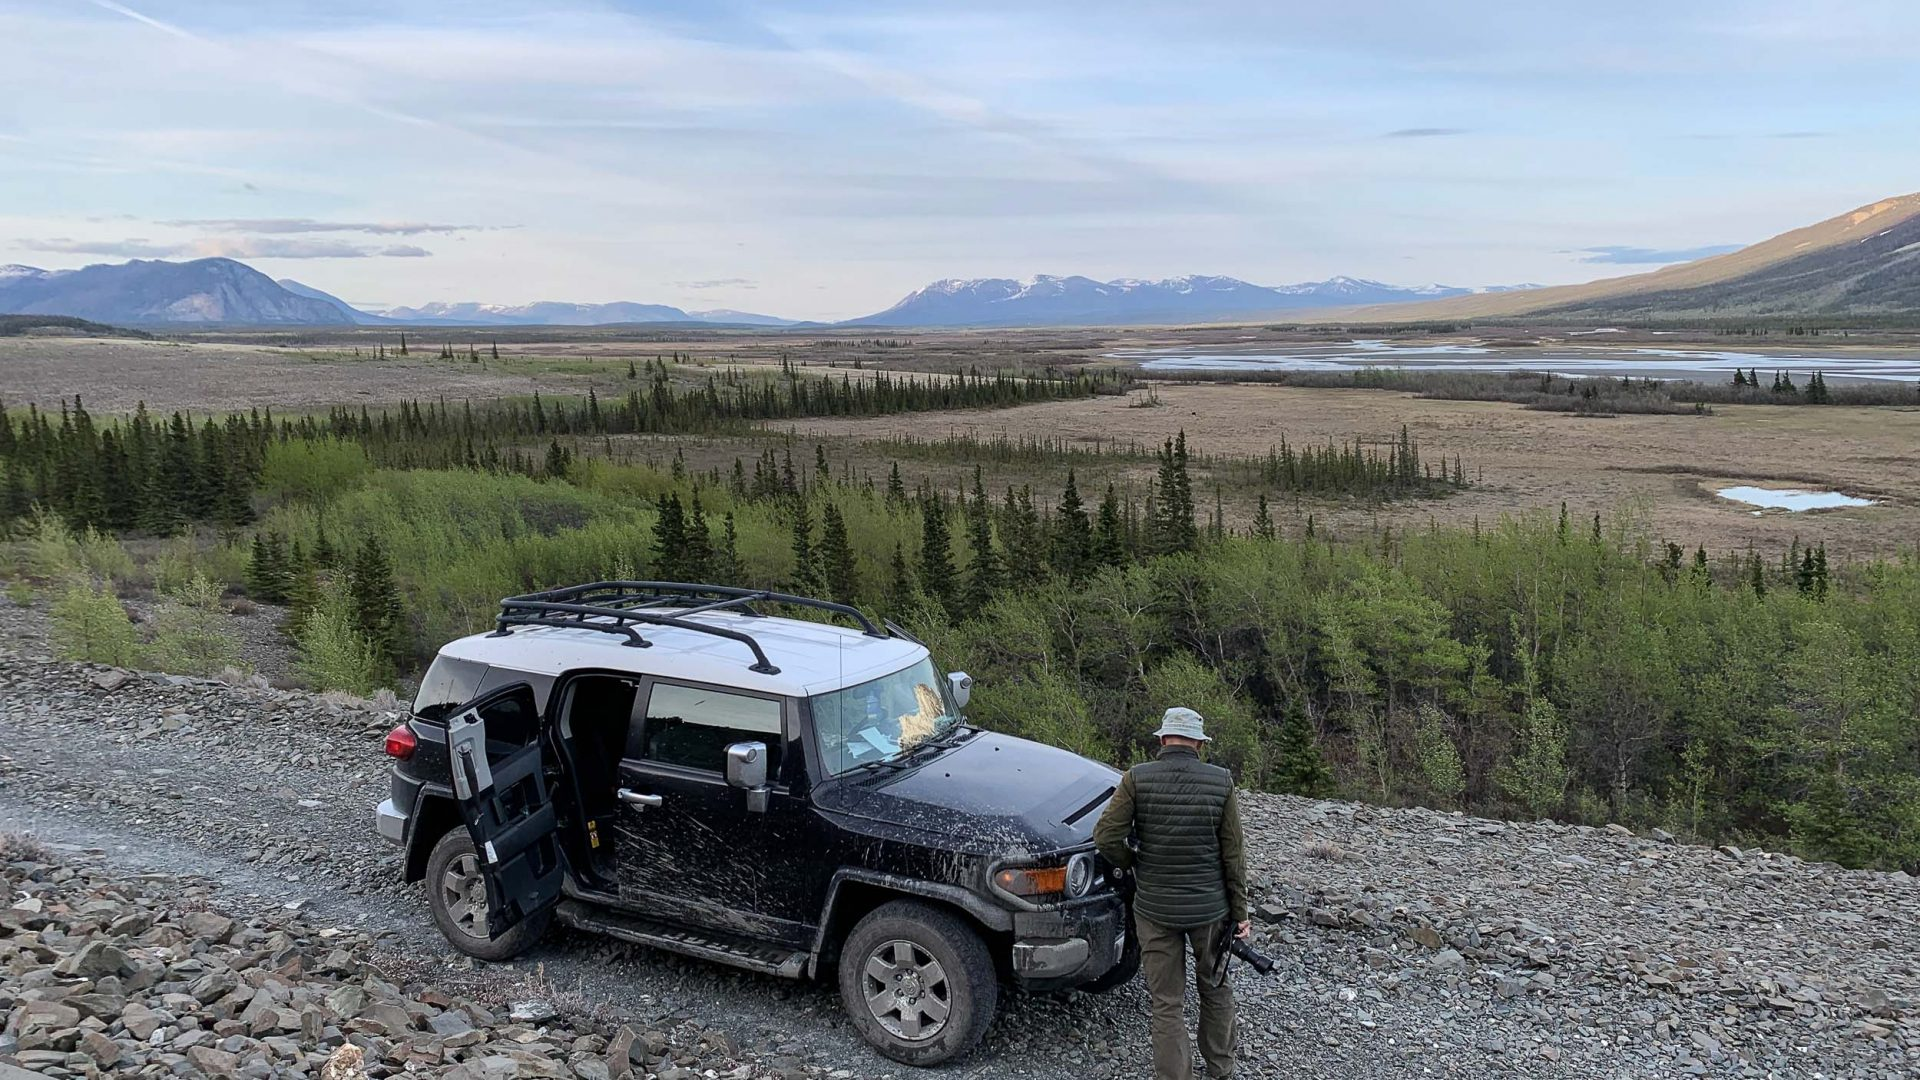 Looking for grizzly bears in Kluane National Park.